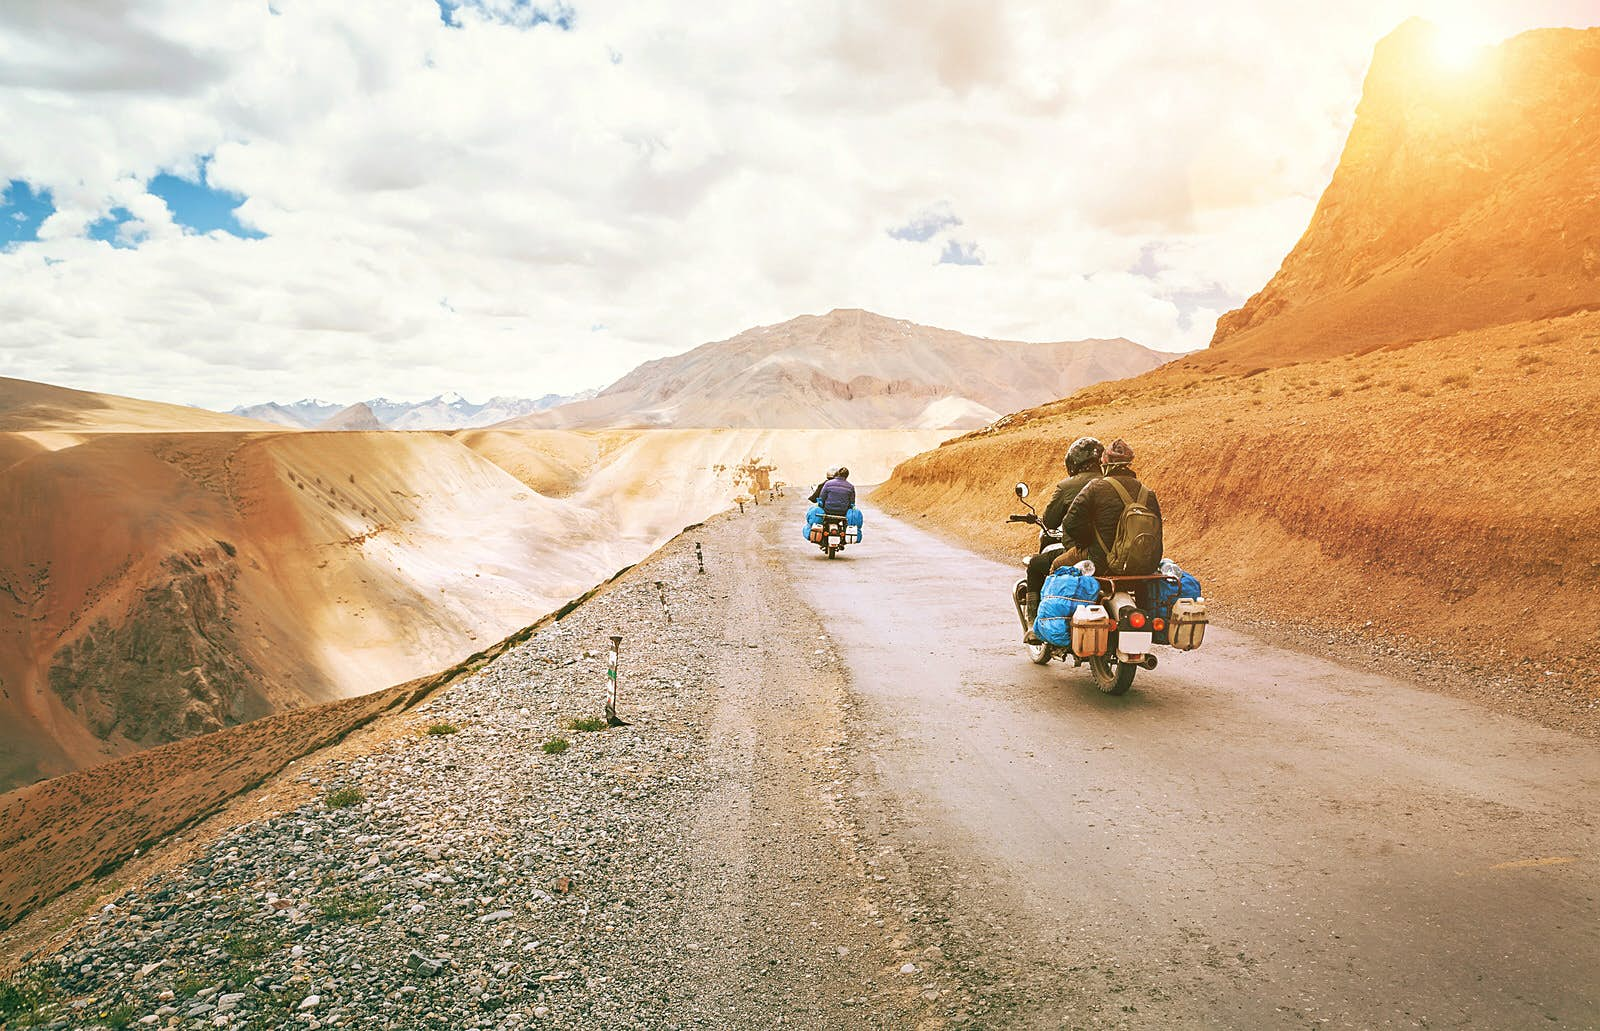 Motorcycle riders on high altitude dirt roads in Northern India